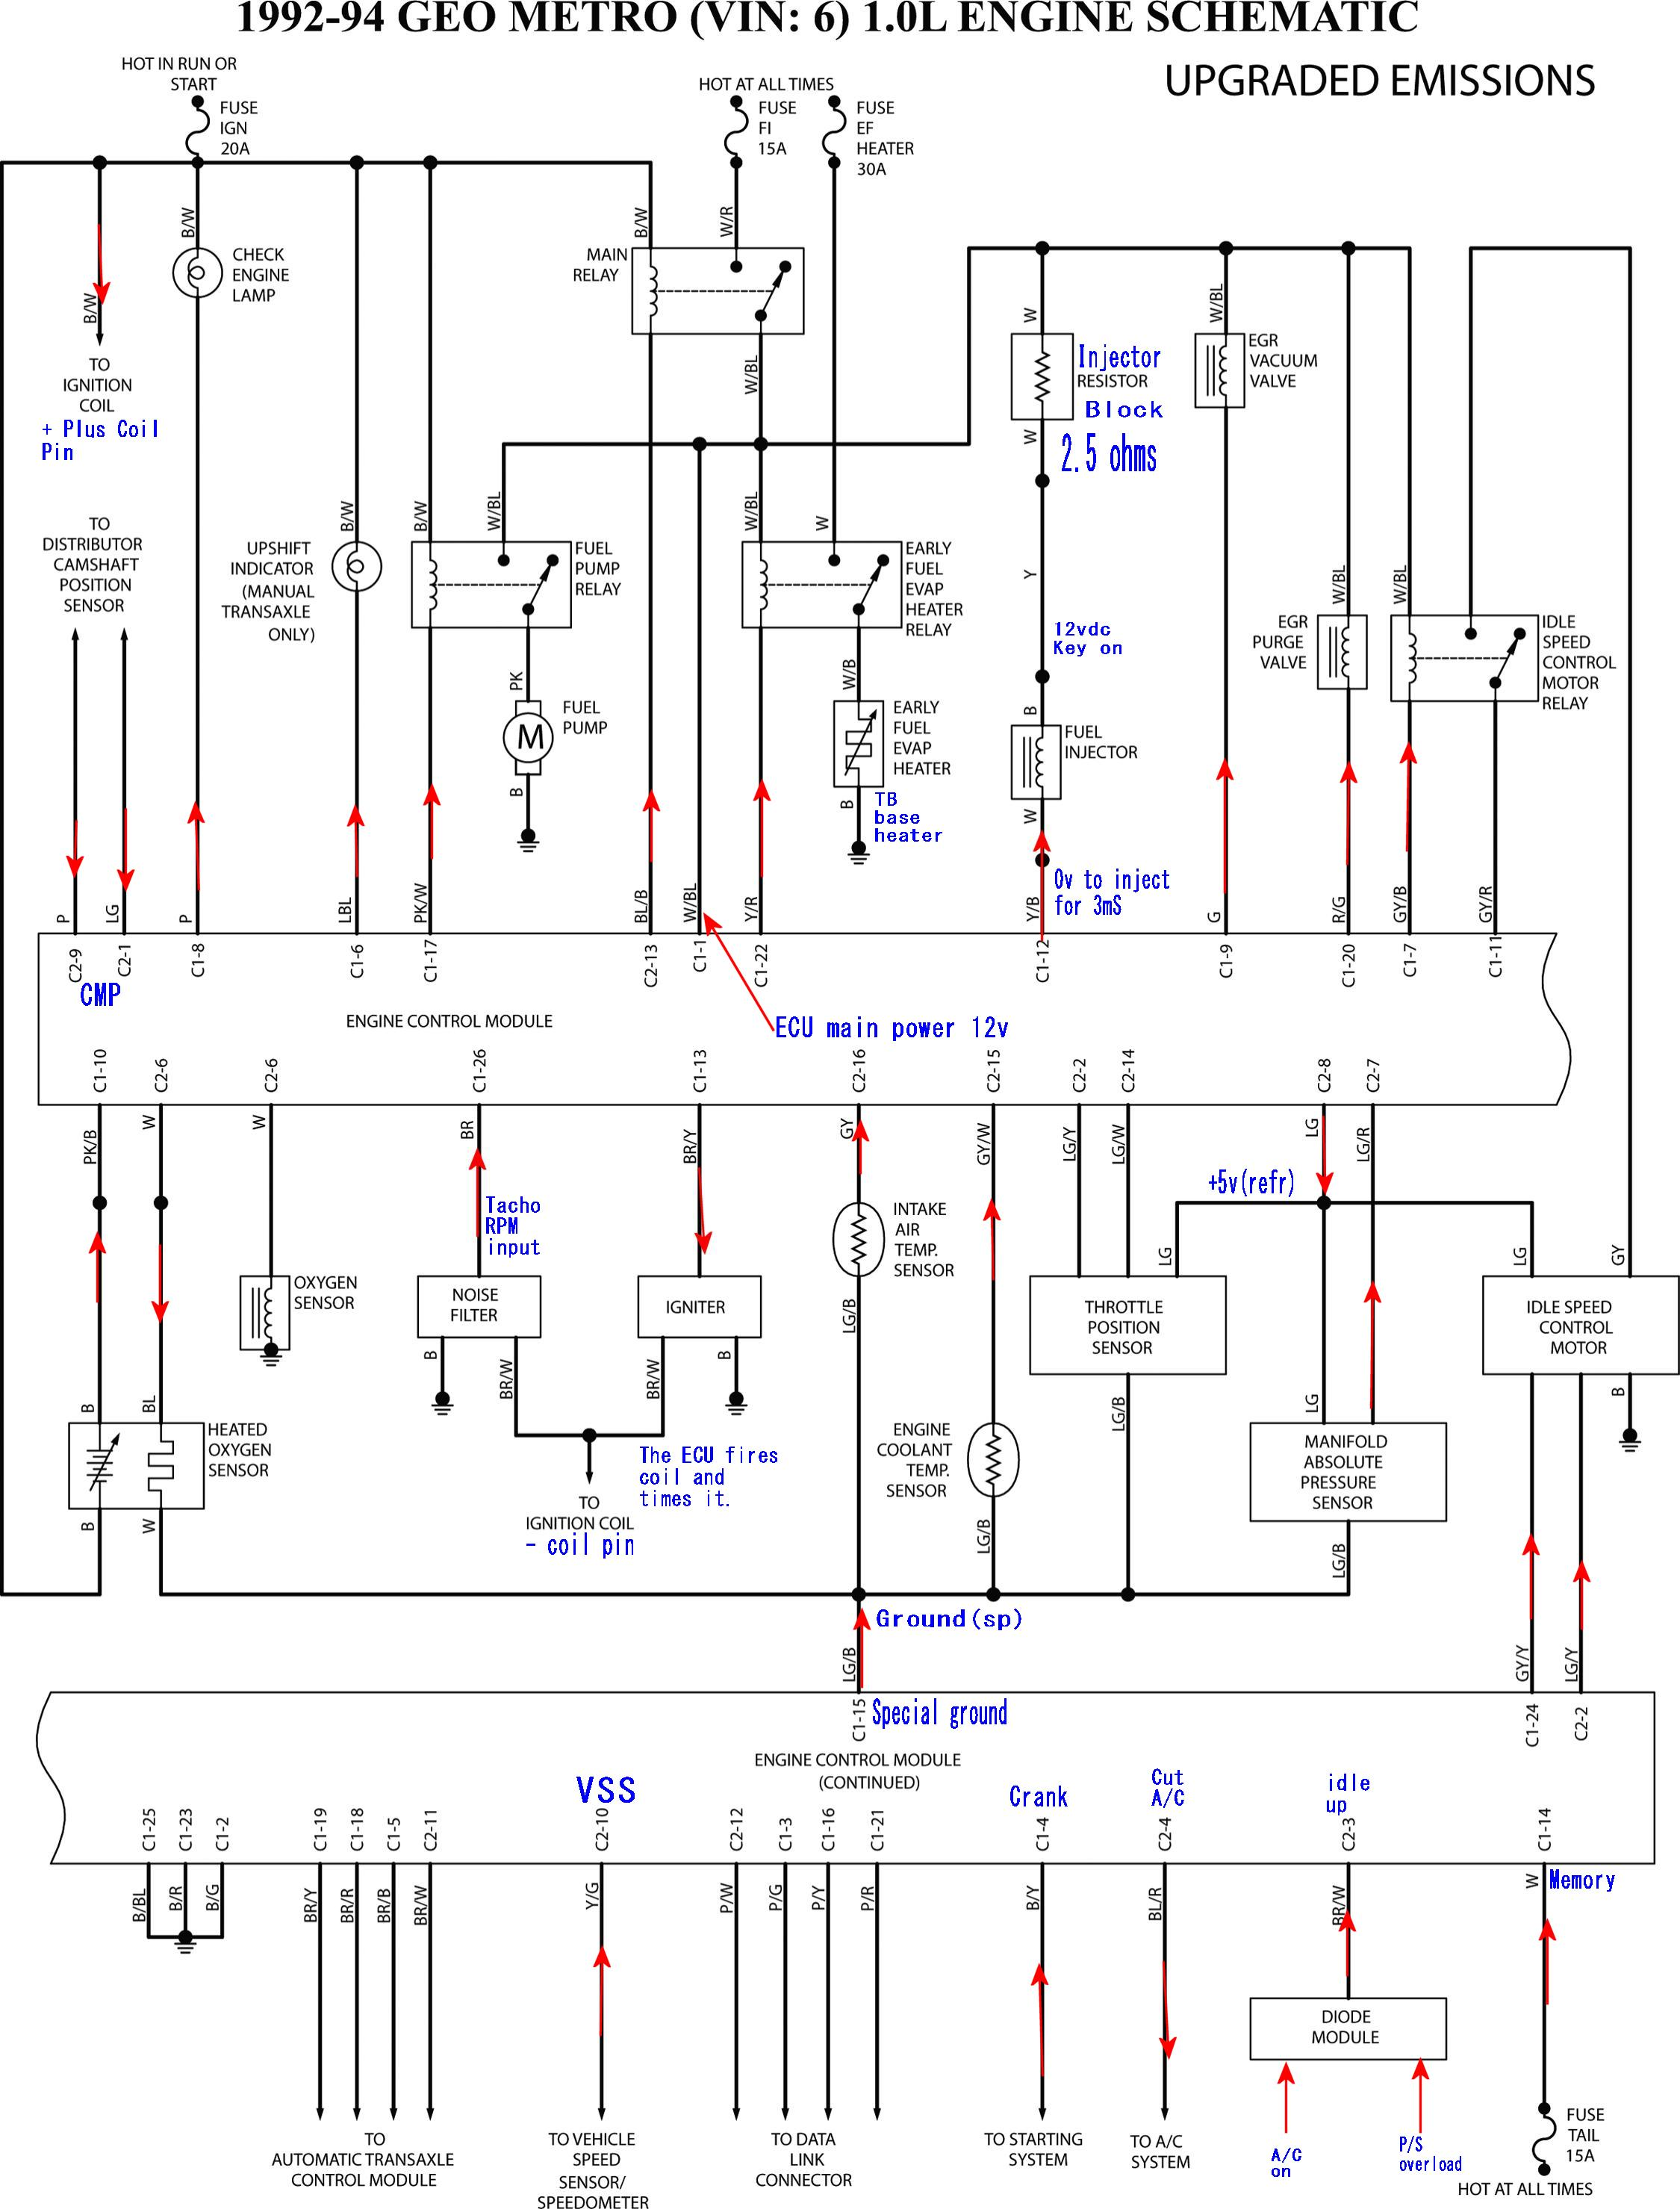 Chevrolet 350 Tbi Wire Diagrams Reinvent Your Wiring Diagram 1973 258 Harness Coil Schematics Rh Enr Green Com 1995 Chevy 5 7 Engine